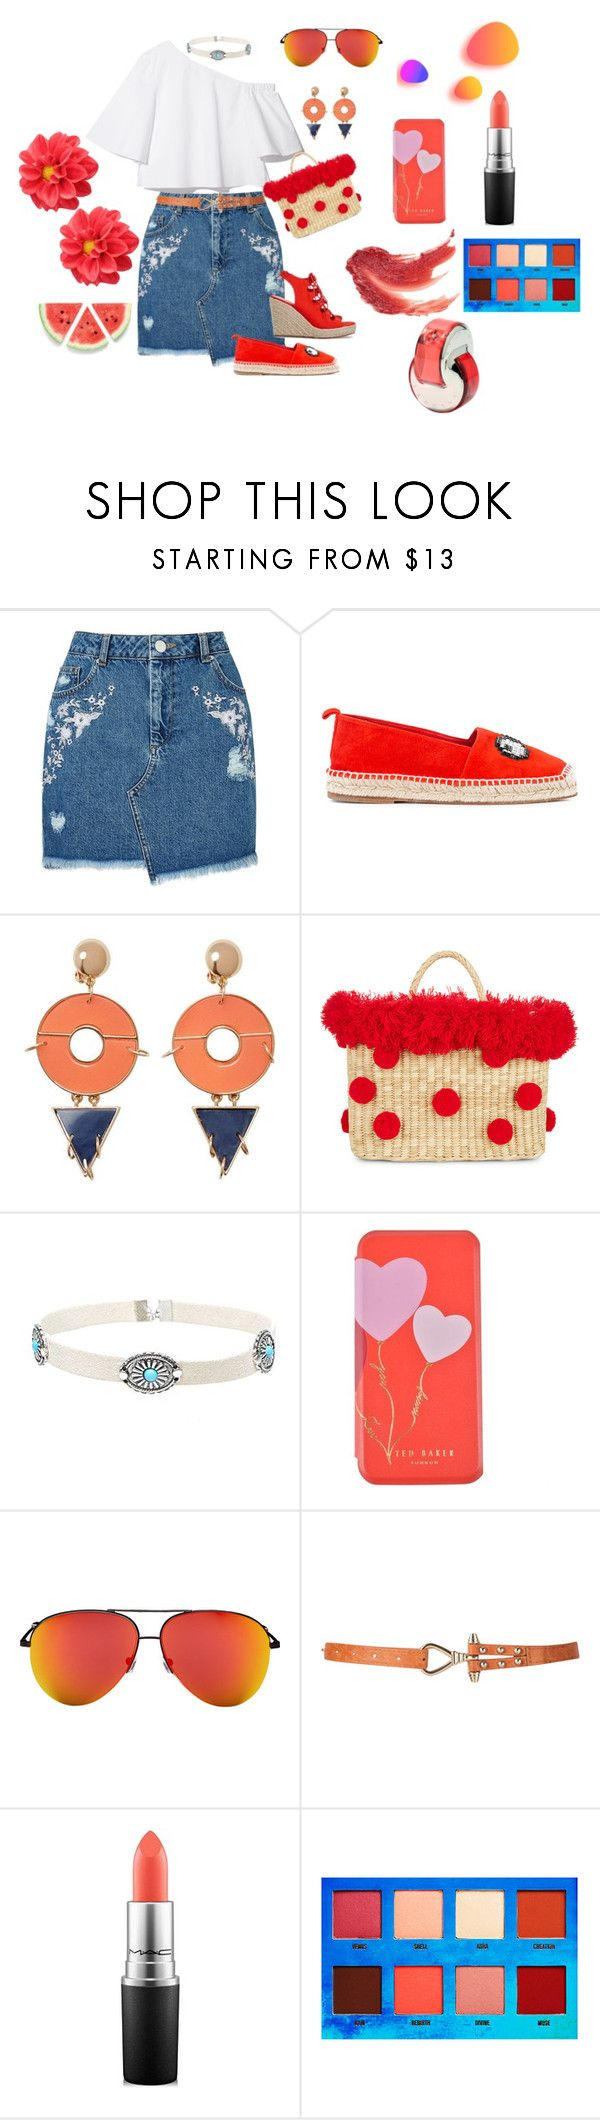 """Look cute"" by megeller ❤ liked on Polyvore featuring Miss Selfridge, Anya Hindmarch, Violeta by Mango, Nannacay, Ted Baker, Victoria Beckham, MAC Cosmetics, Lime Crime and Bulgari"